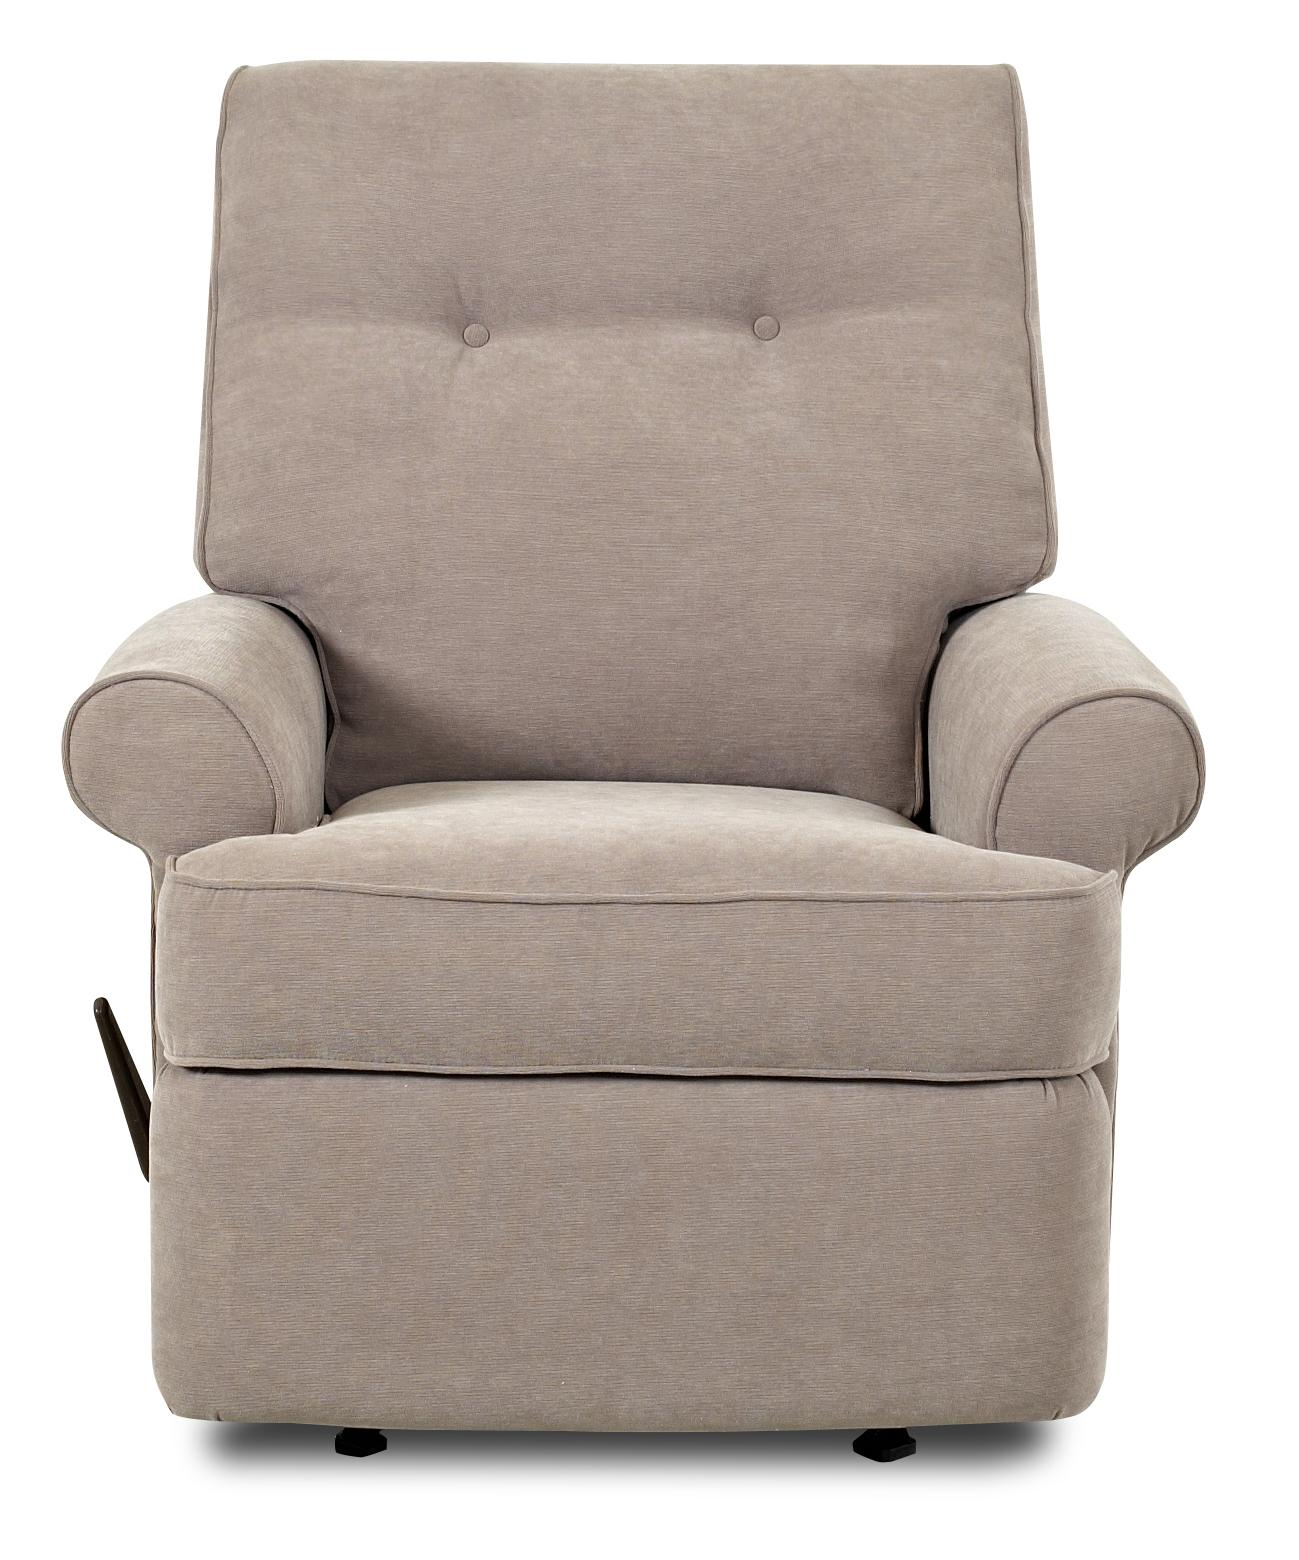 Power Reclining Chairs Clearwater Transitional Power Reclining Chair By Klaussner